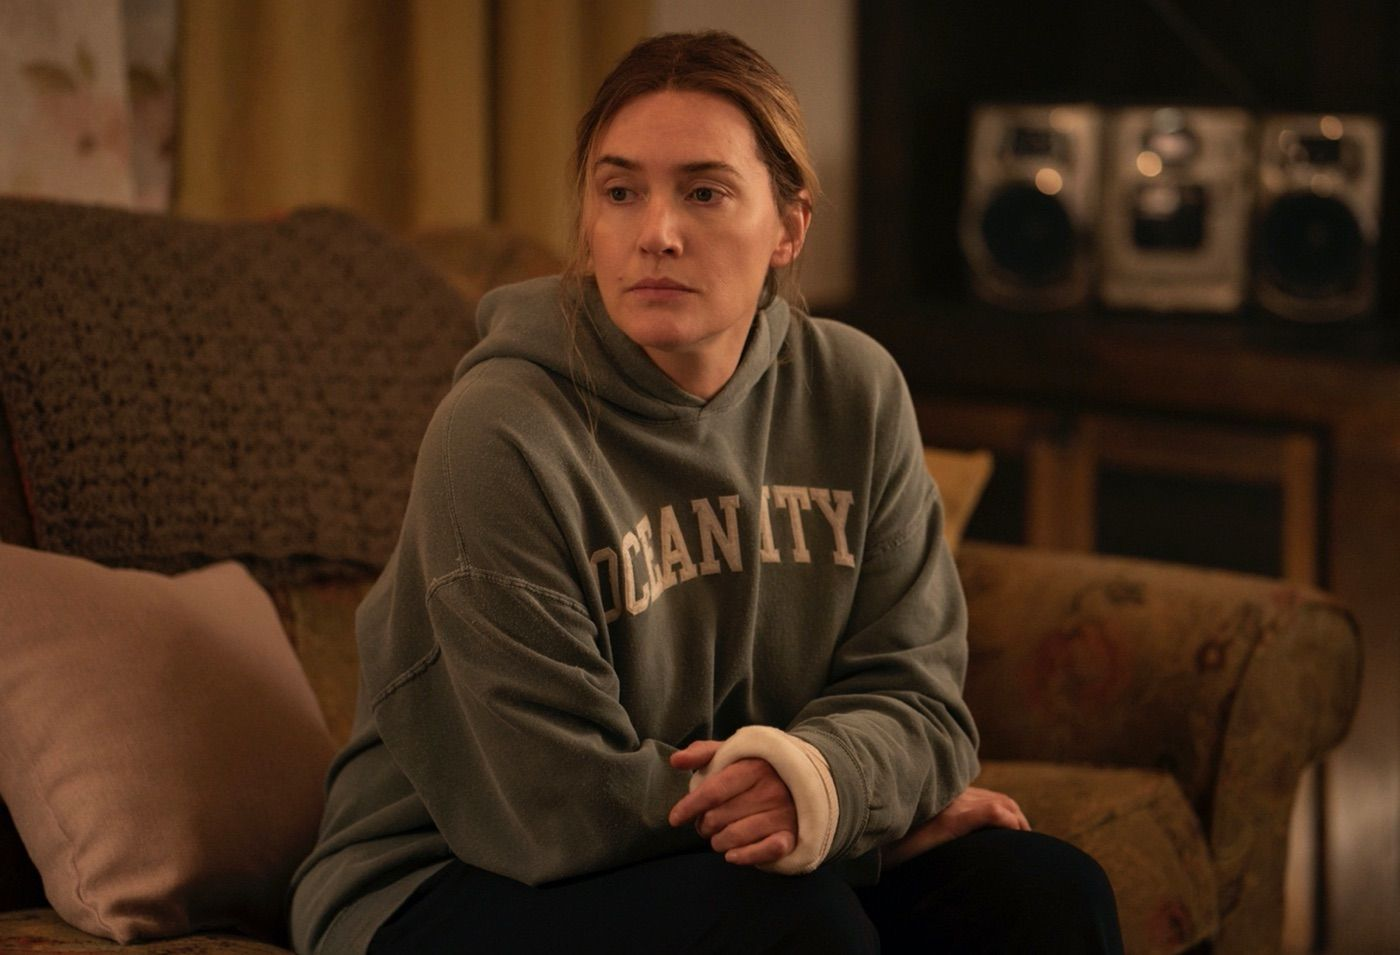 Kate Winslet on Mare of Easttown and Giving Up on Glamorous Roles